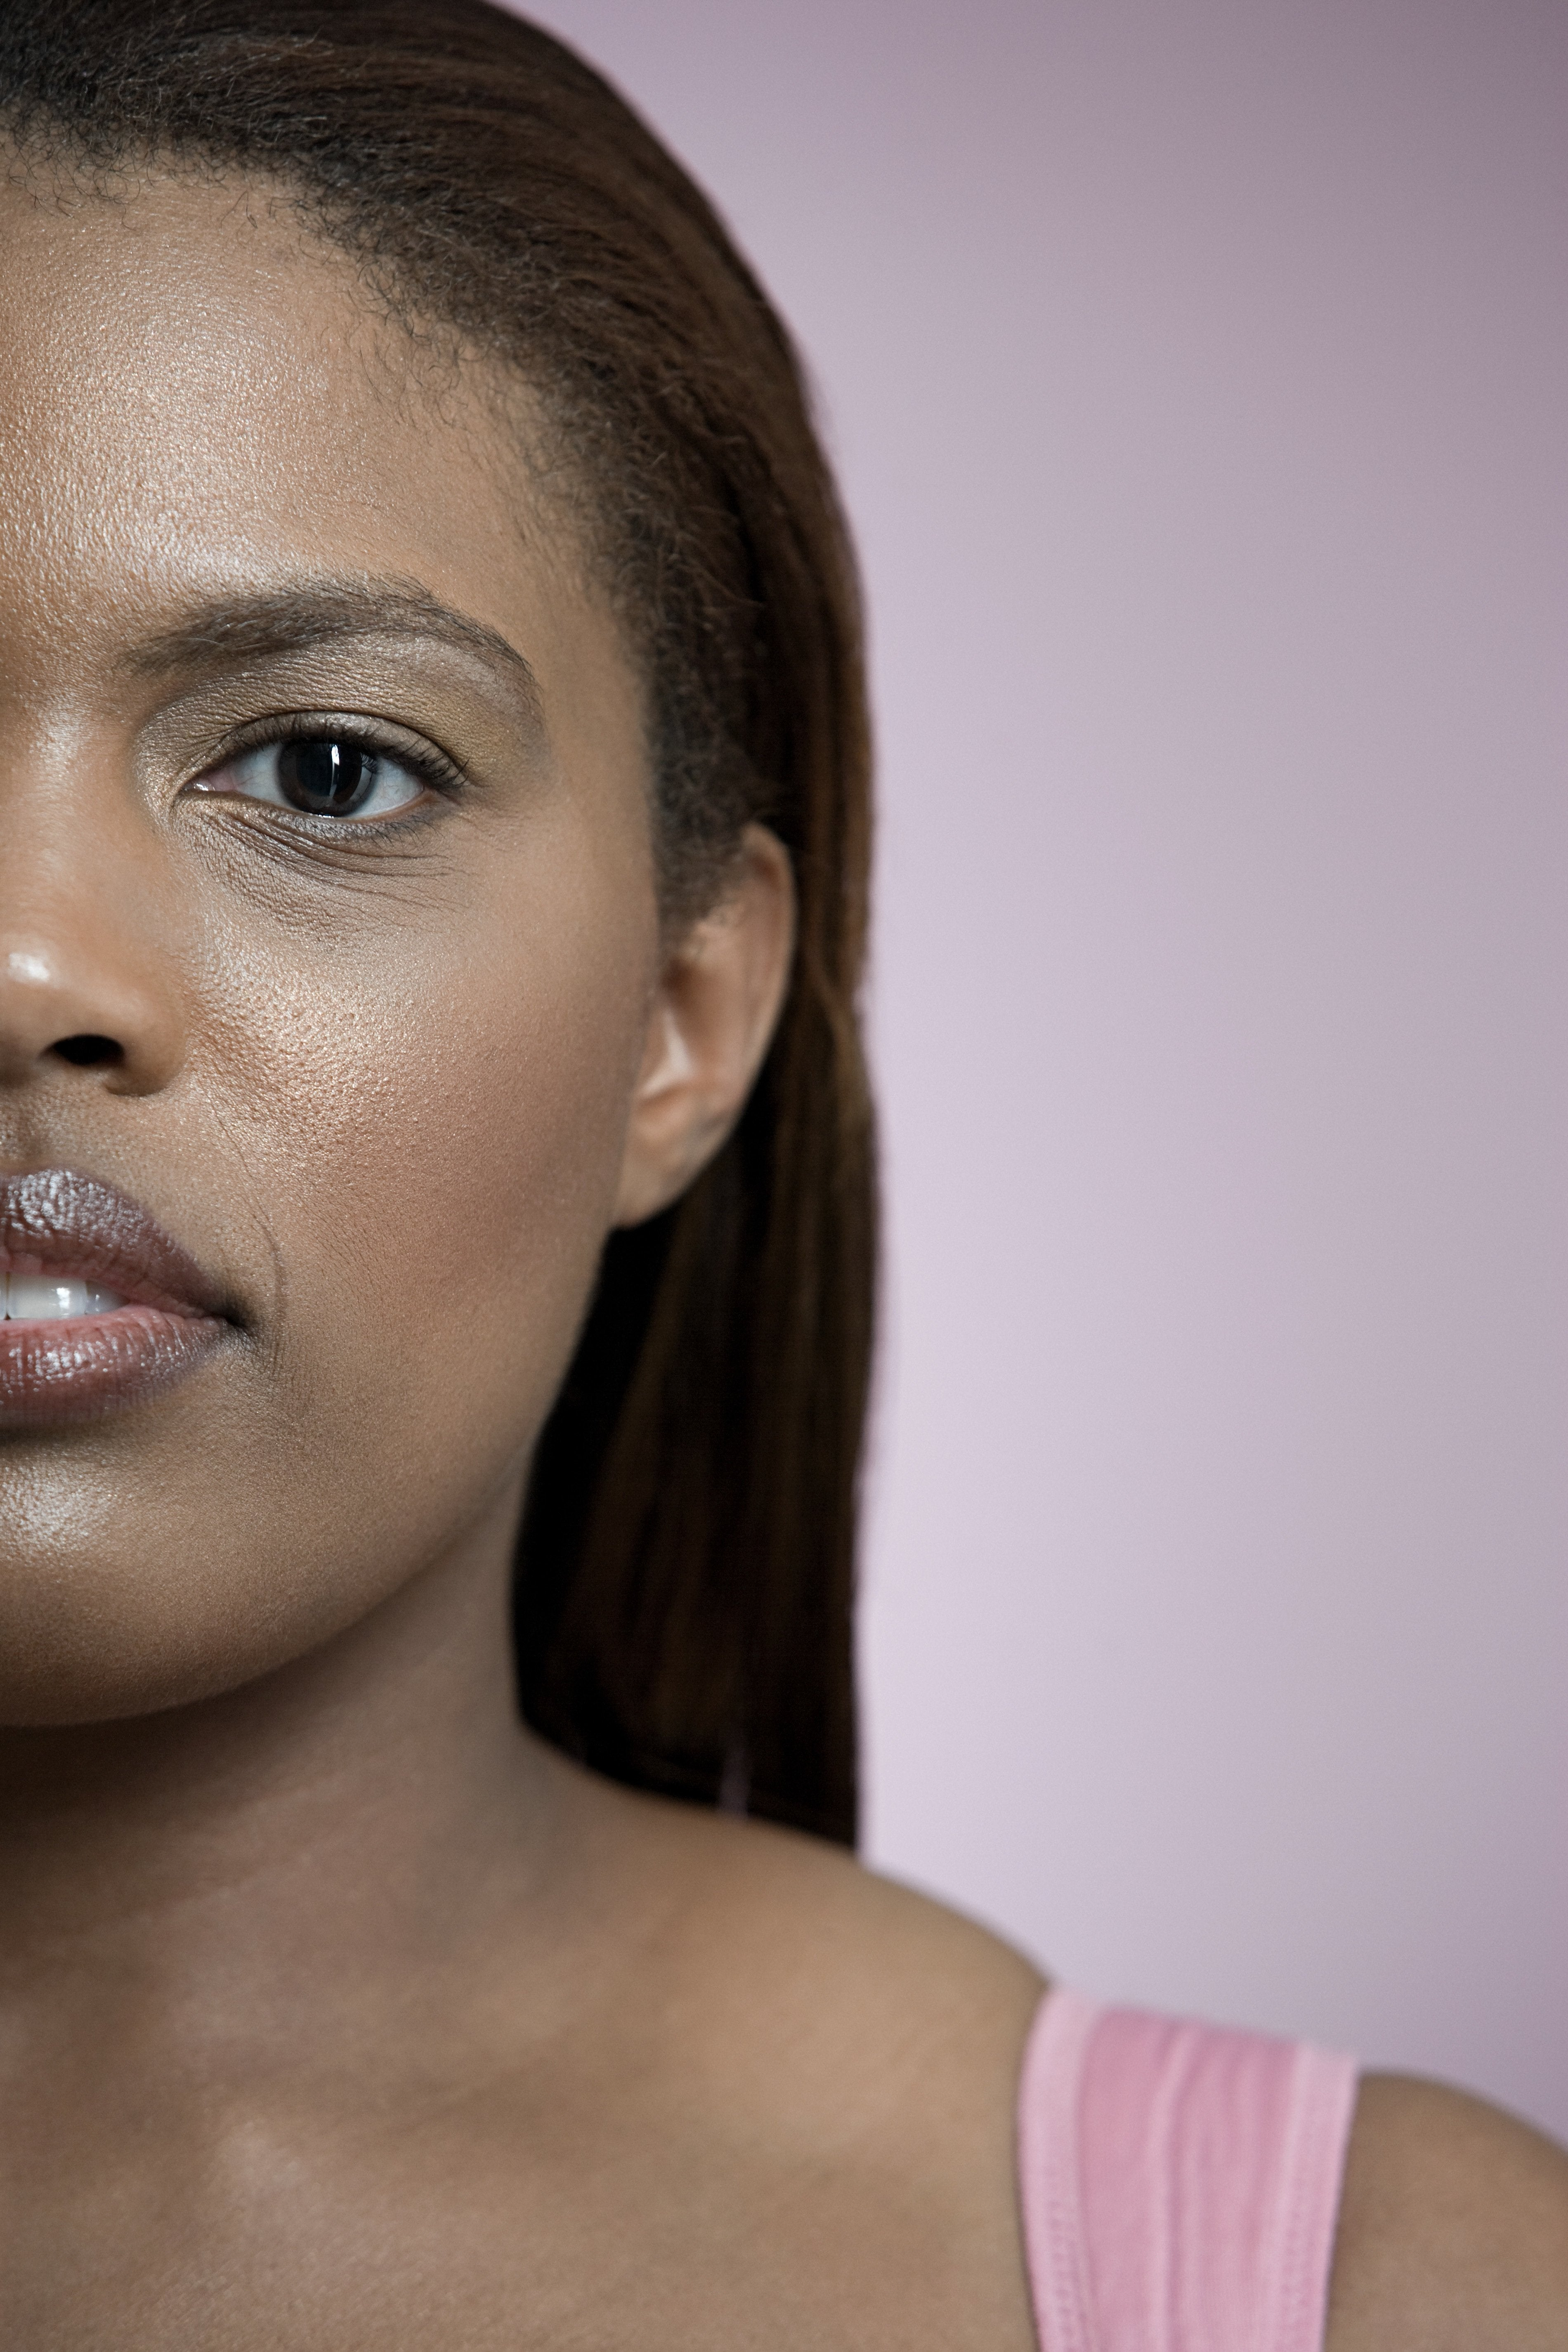 Plus-Size Model in the City: Foundation